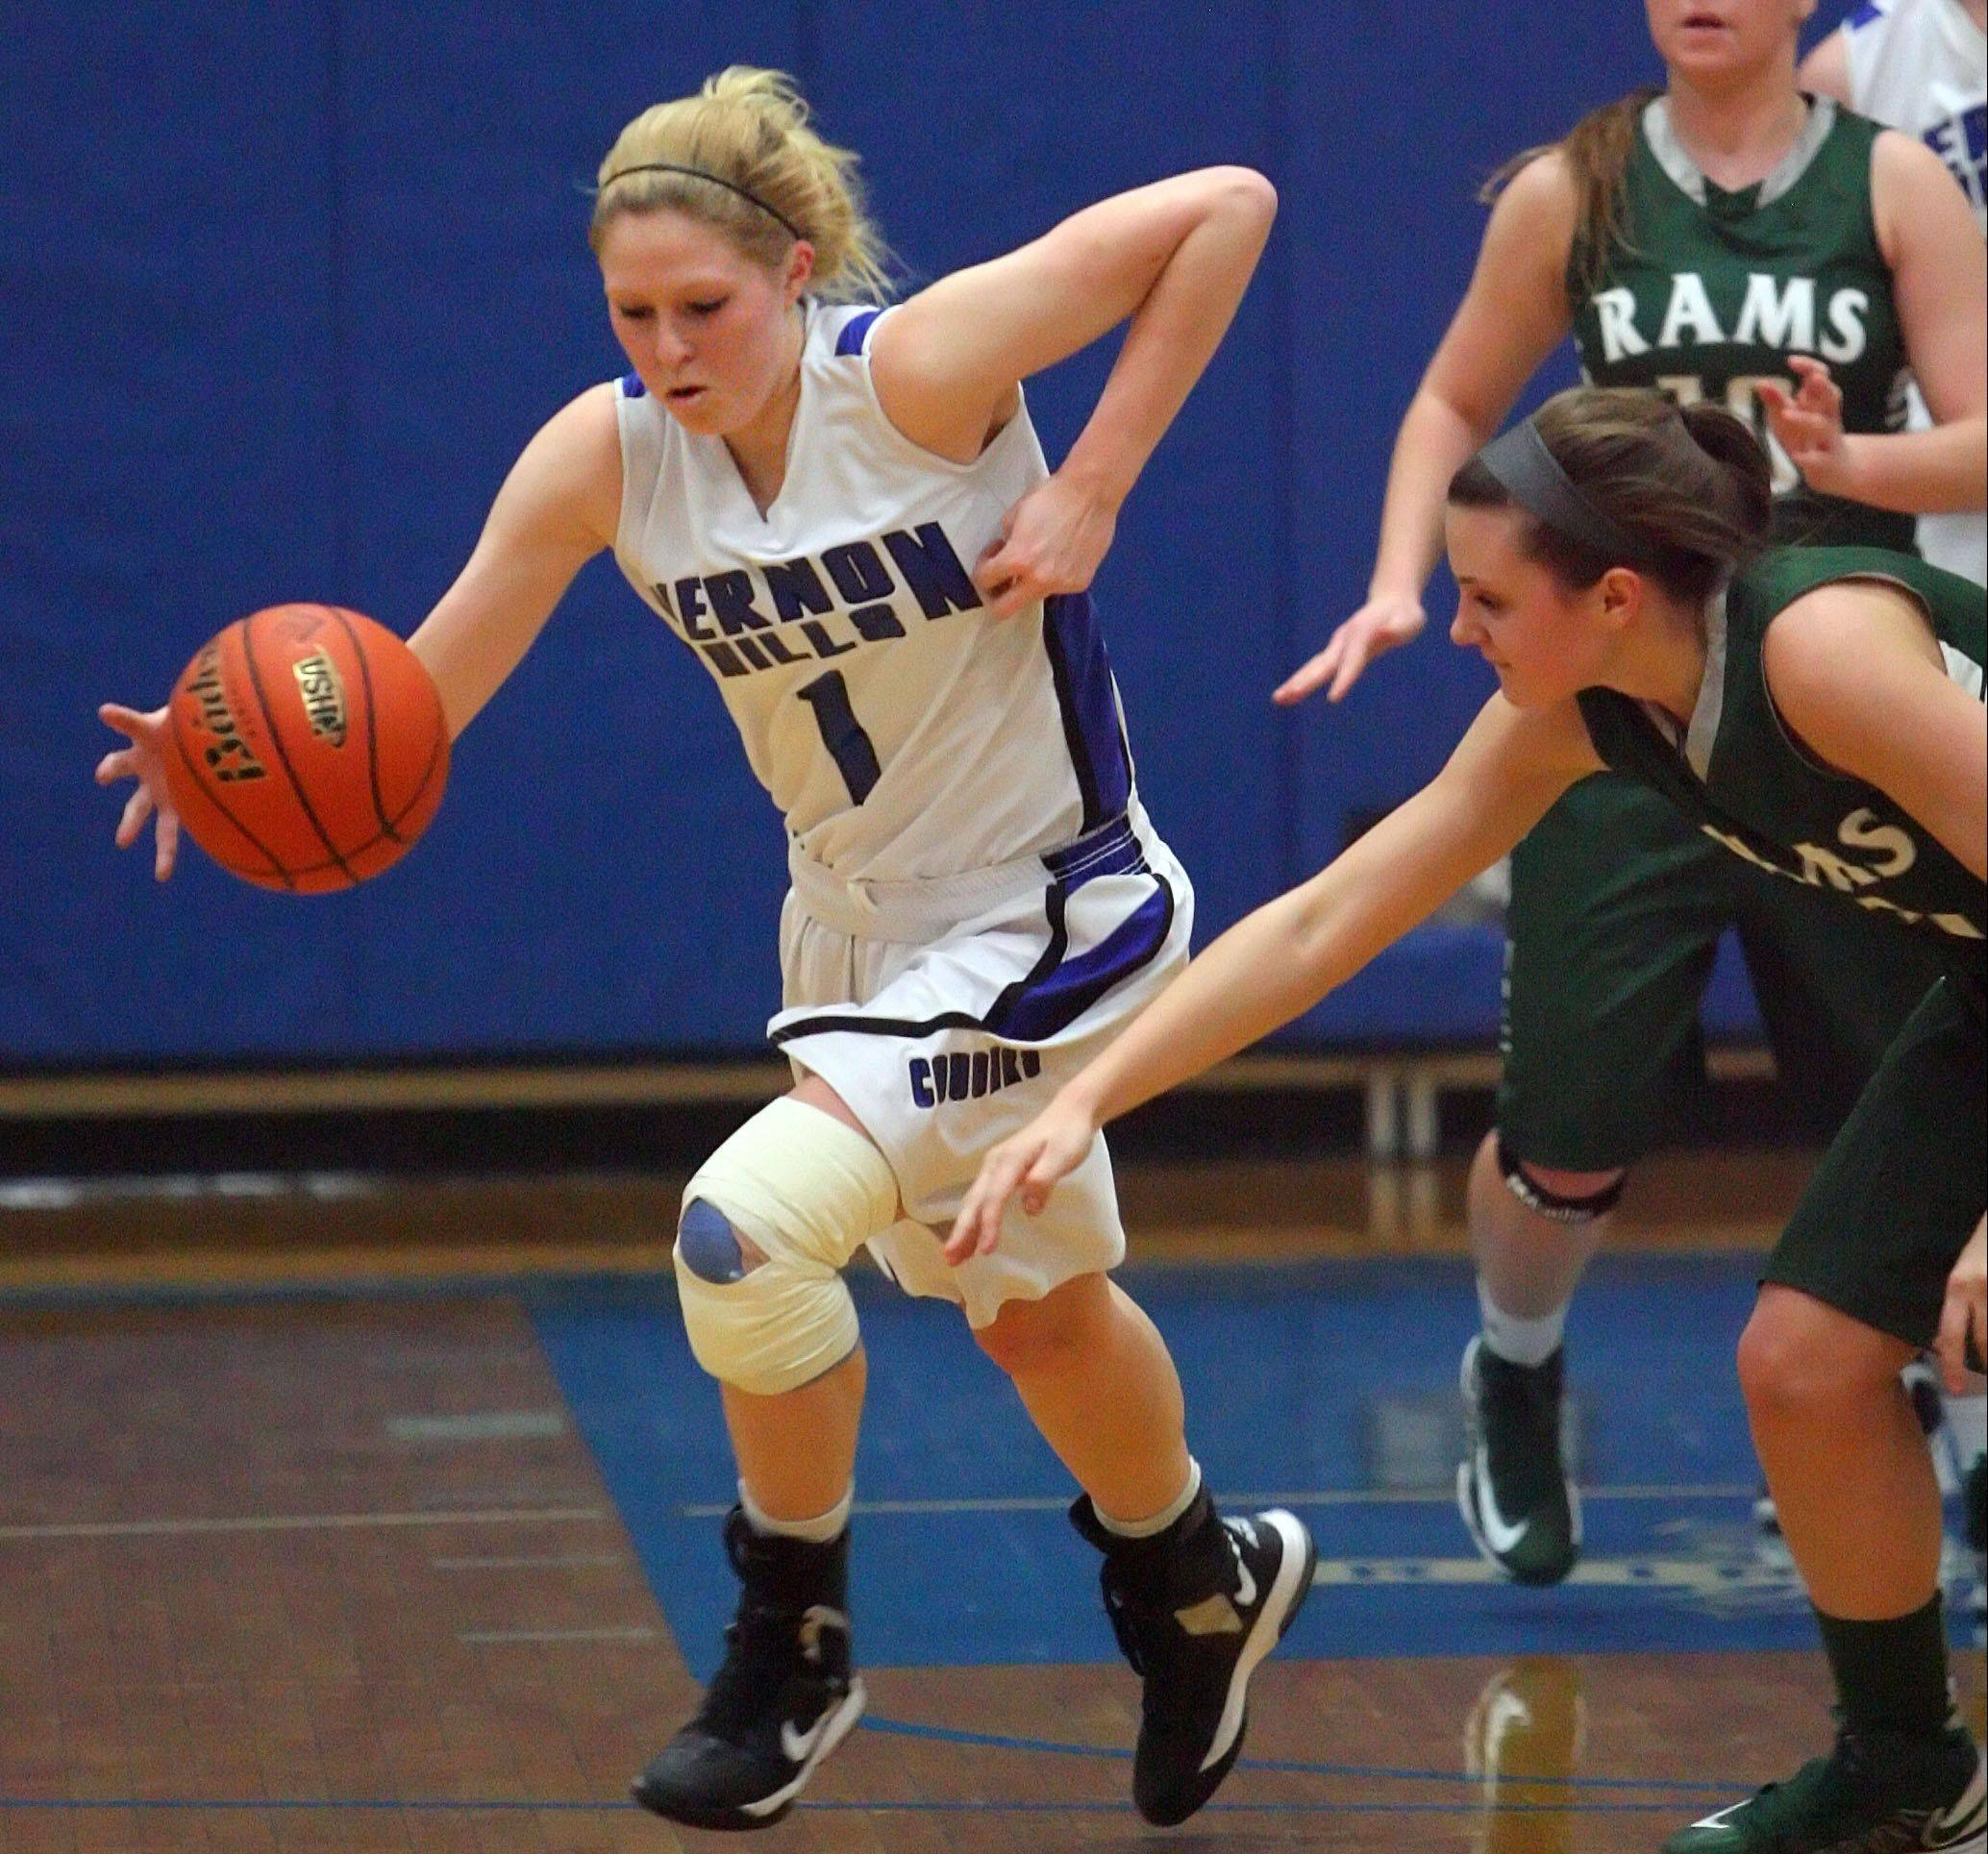 Vernon Hills' Sydney Smith, left steals the ball from Grayslake Central's Savannah Mudd during Class 3A girls basketball sectional semifinal play at Vernon Hills on Tuesday.